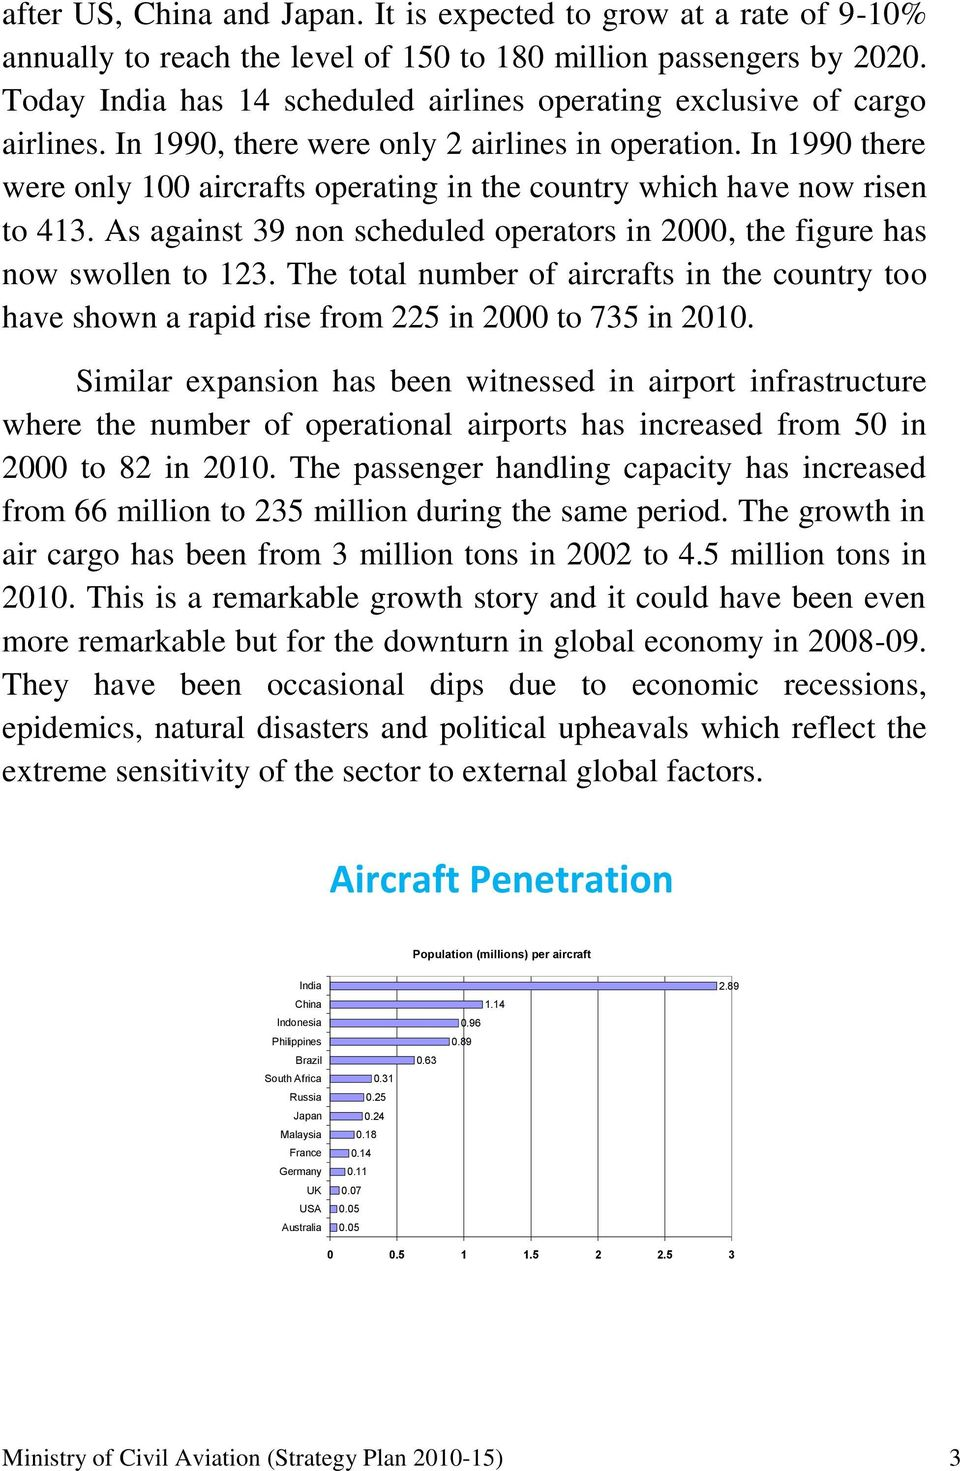 In 1990 there were only 100 aircrafts operating in the country which have now risen to 413. As against 39 non scheduled operators in 2000, the figure has now swollen to 123.